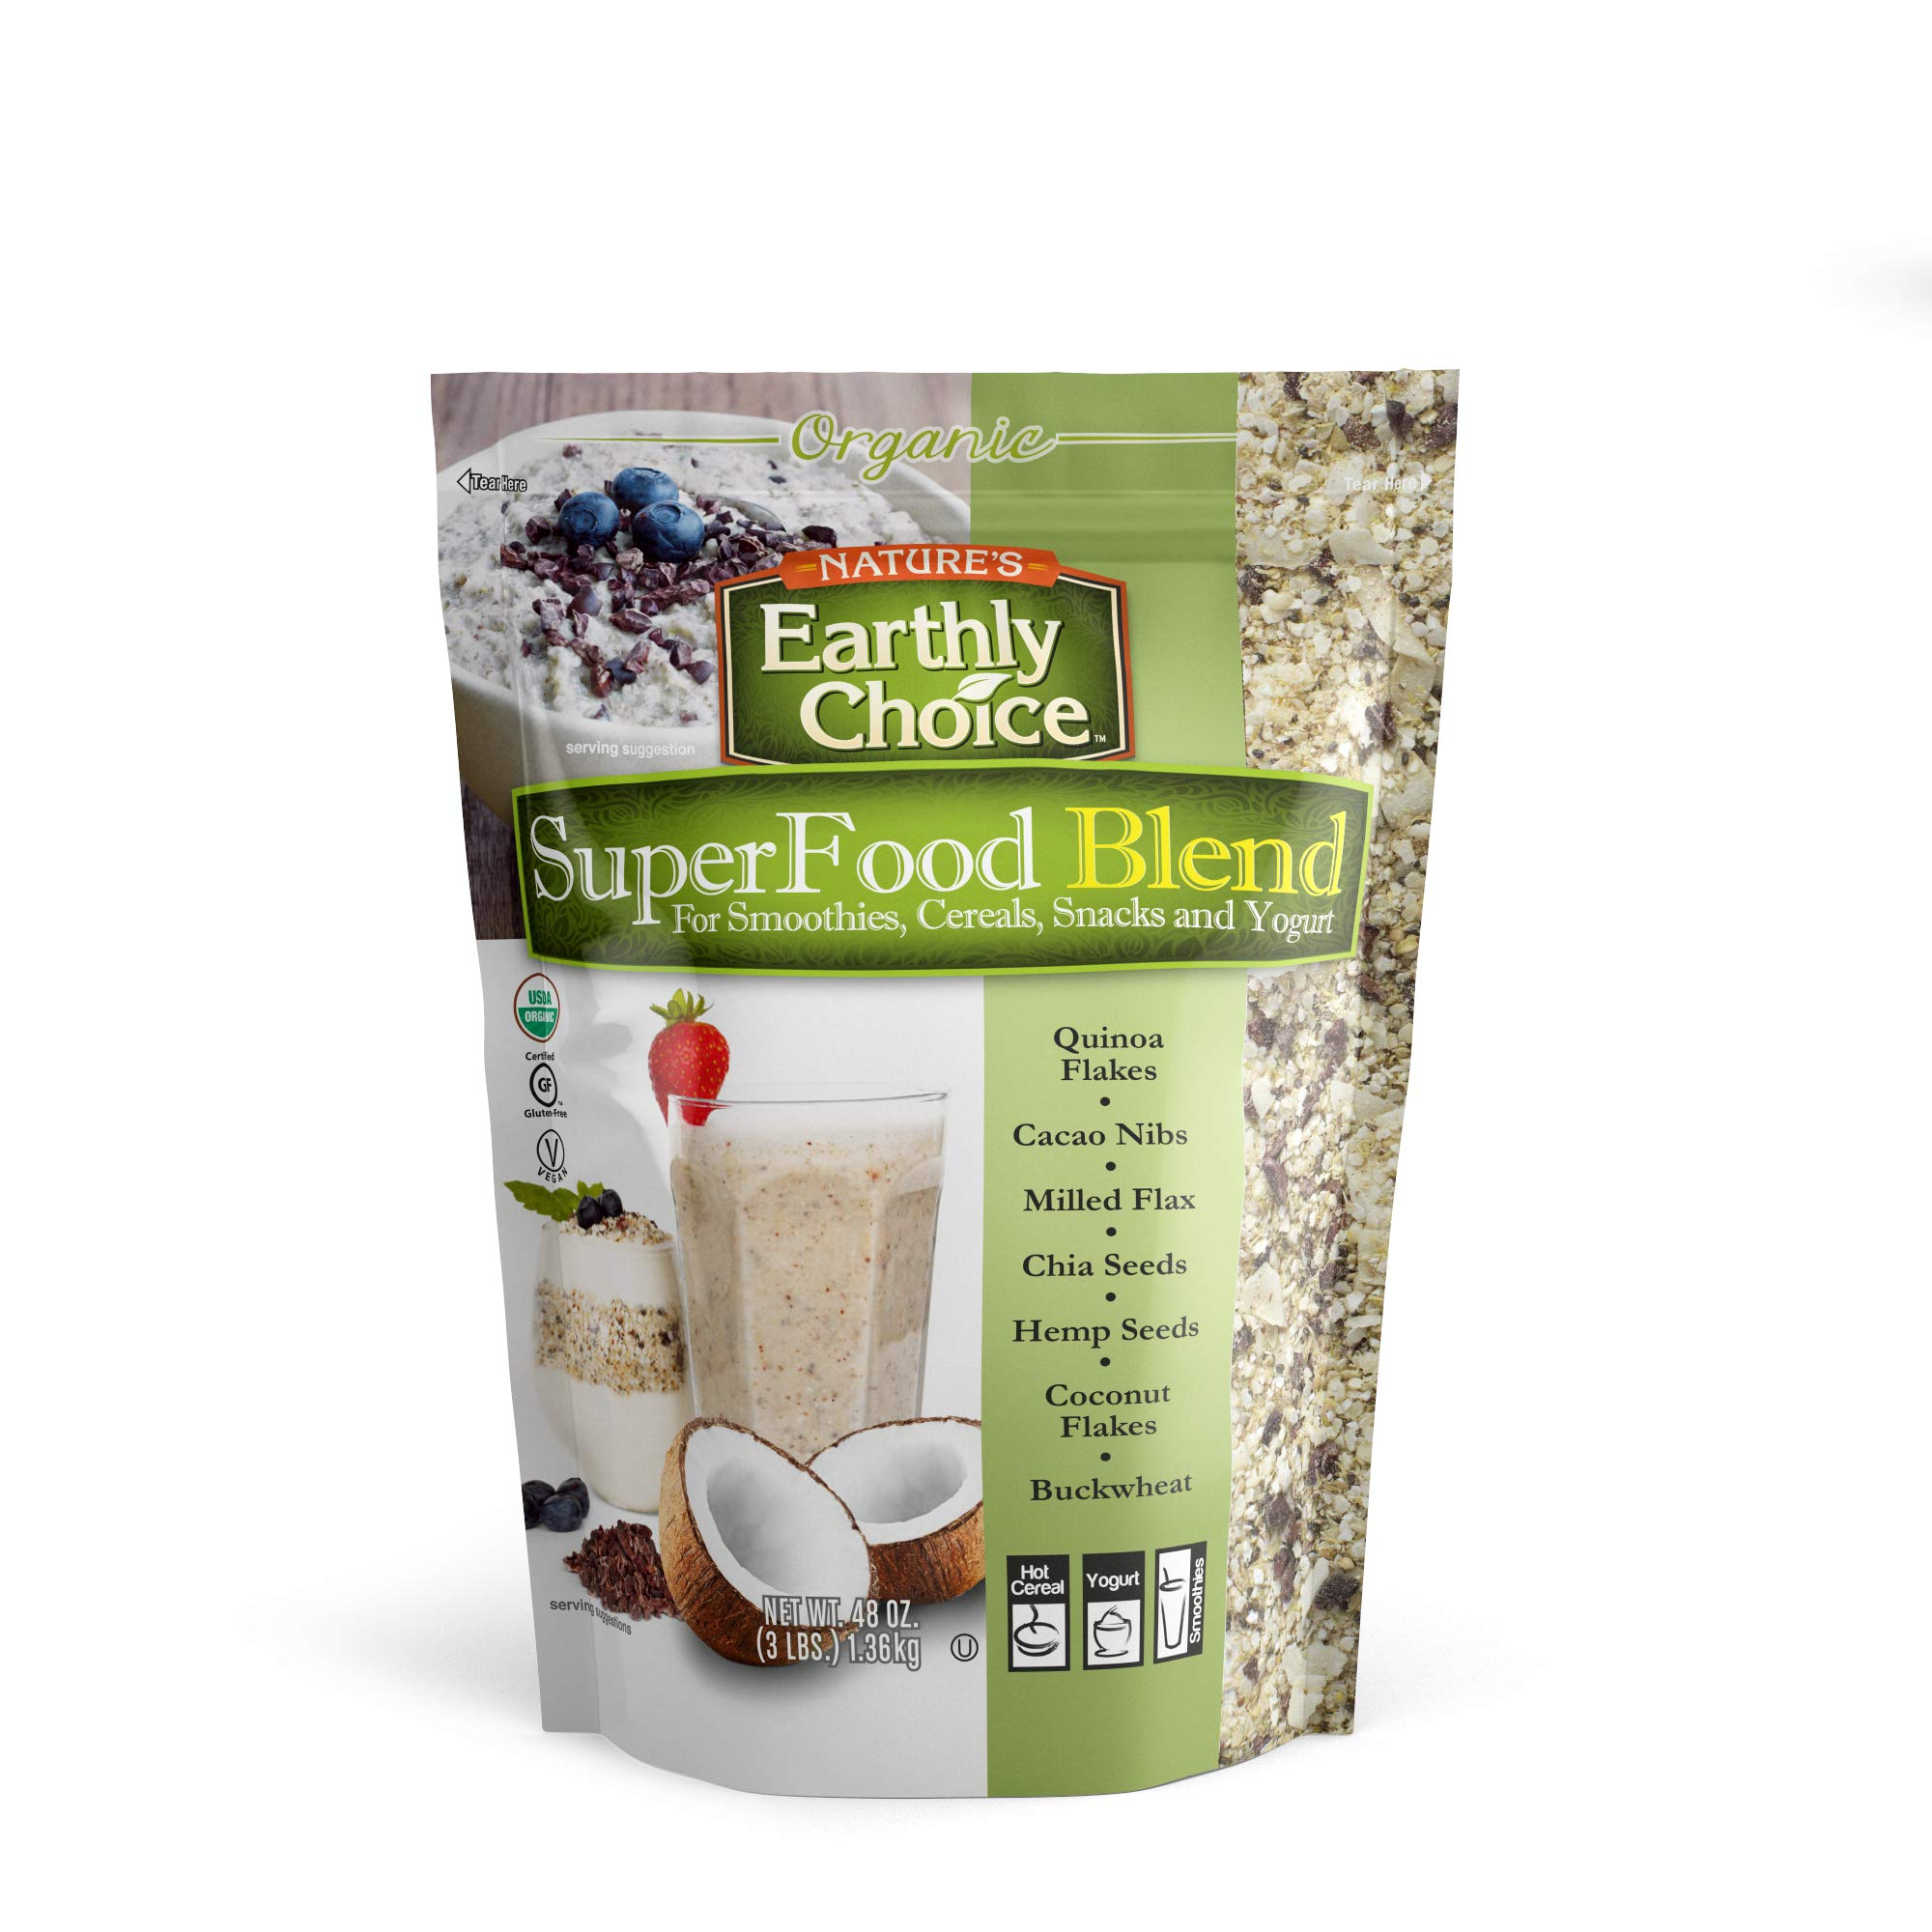 Organic Nature's Earthly Choice SuperFood Blend by Nature's Earthly Choice